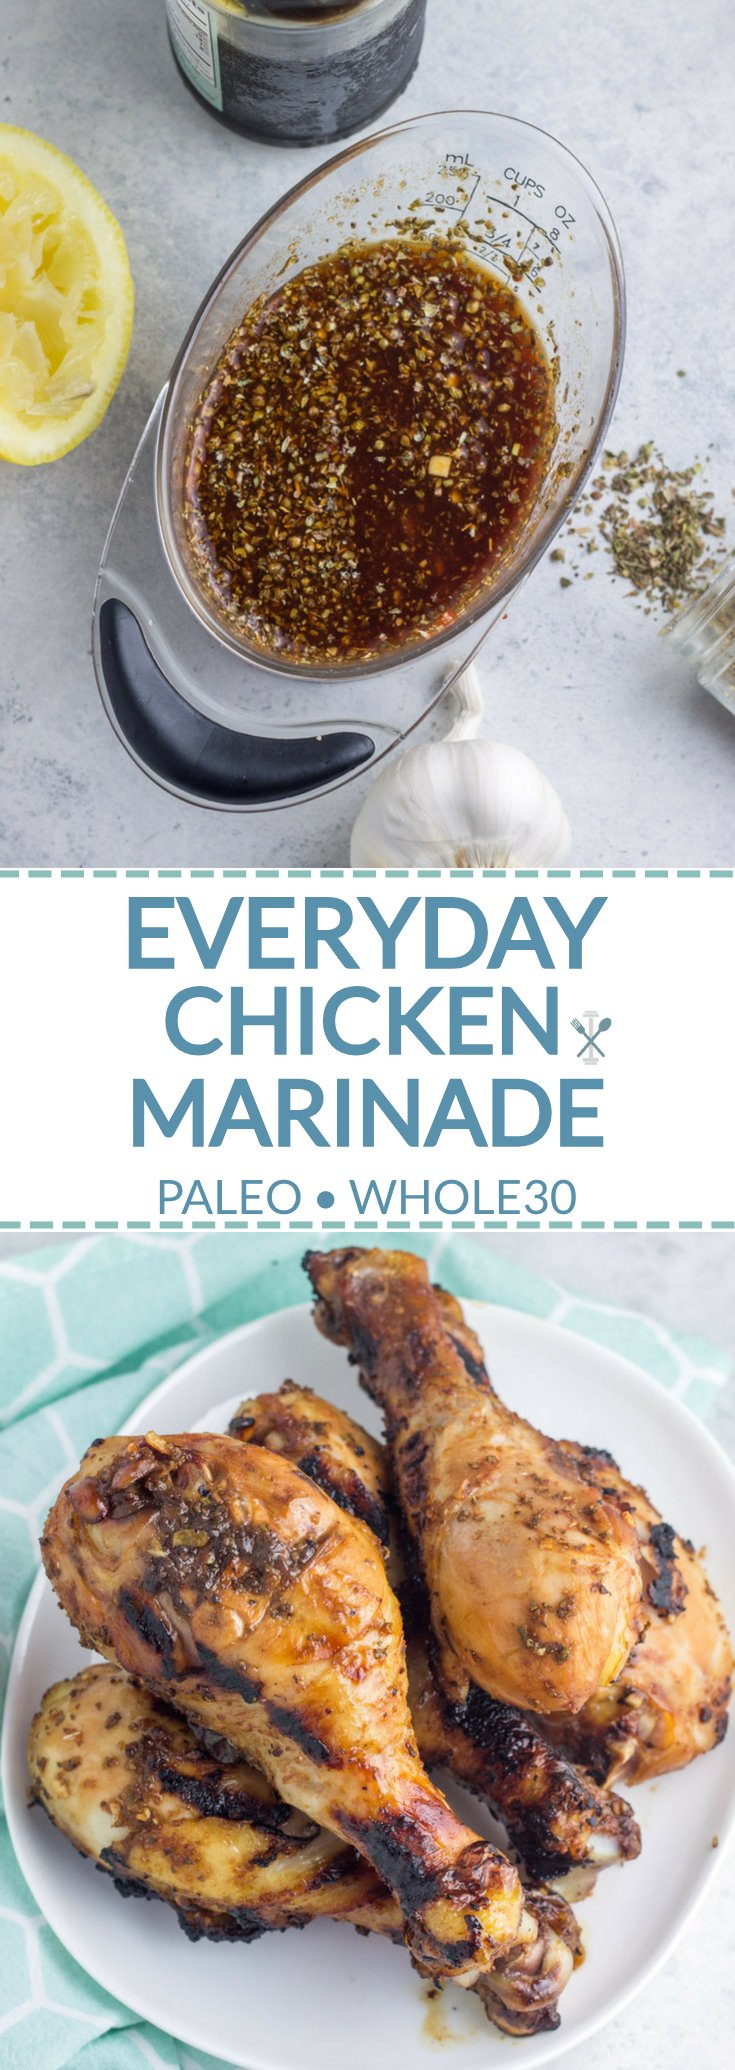 A simple but delicious paleo and Whole30 everyday chicken marinade. Everyday ingredients, spectacular flavor